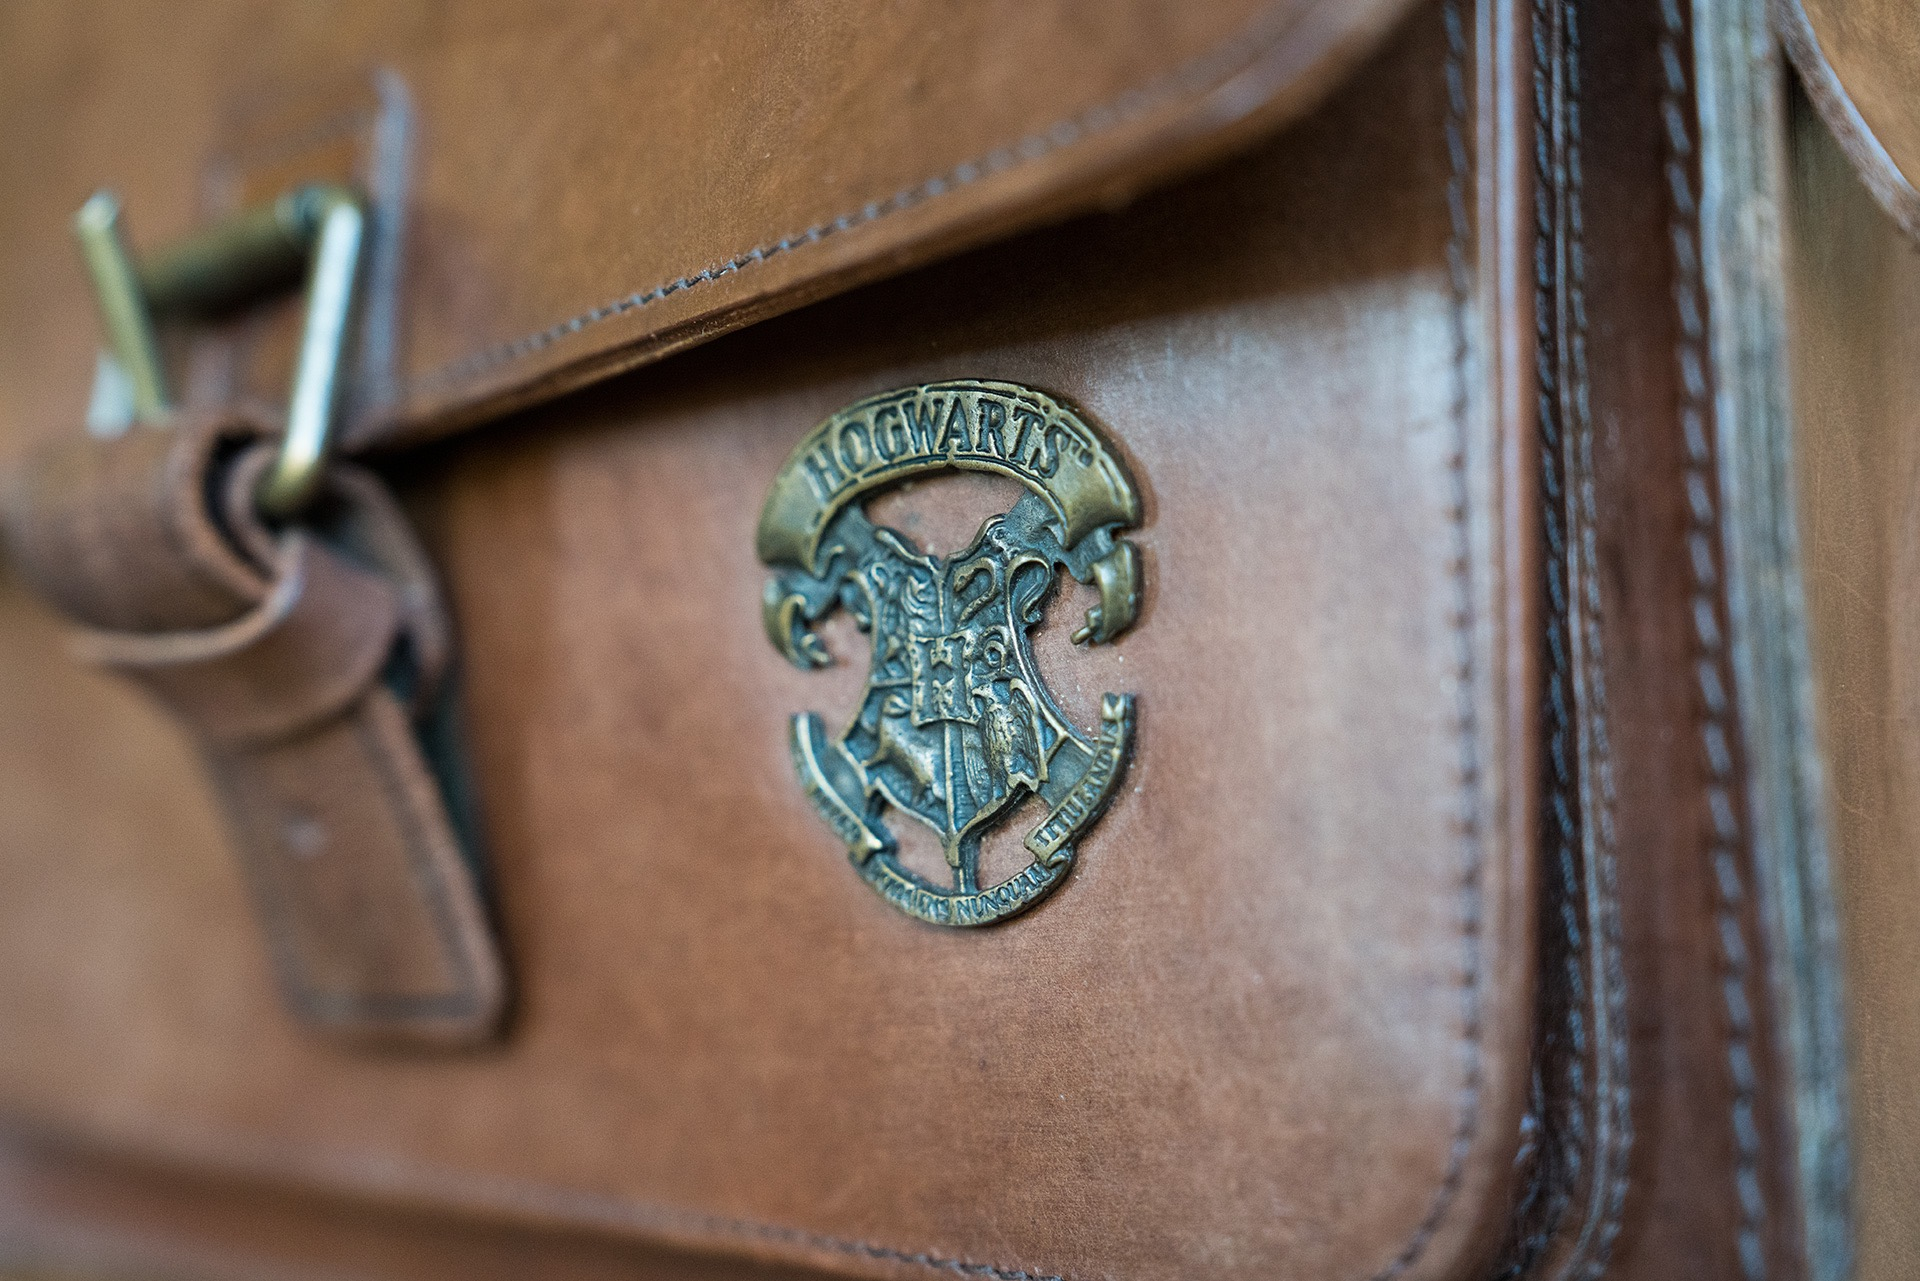 Harry Potter emblem on leather satchel